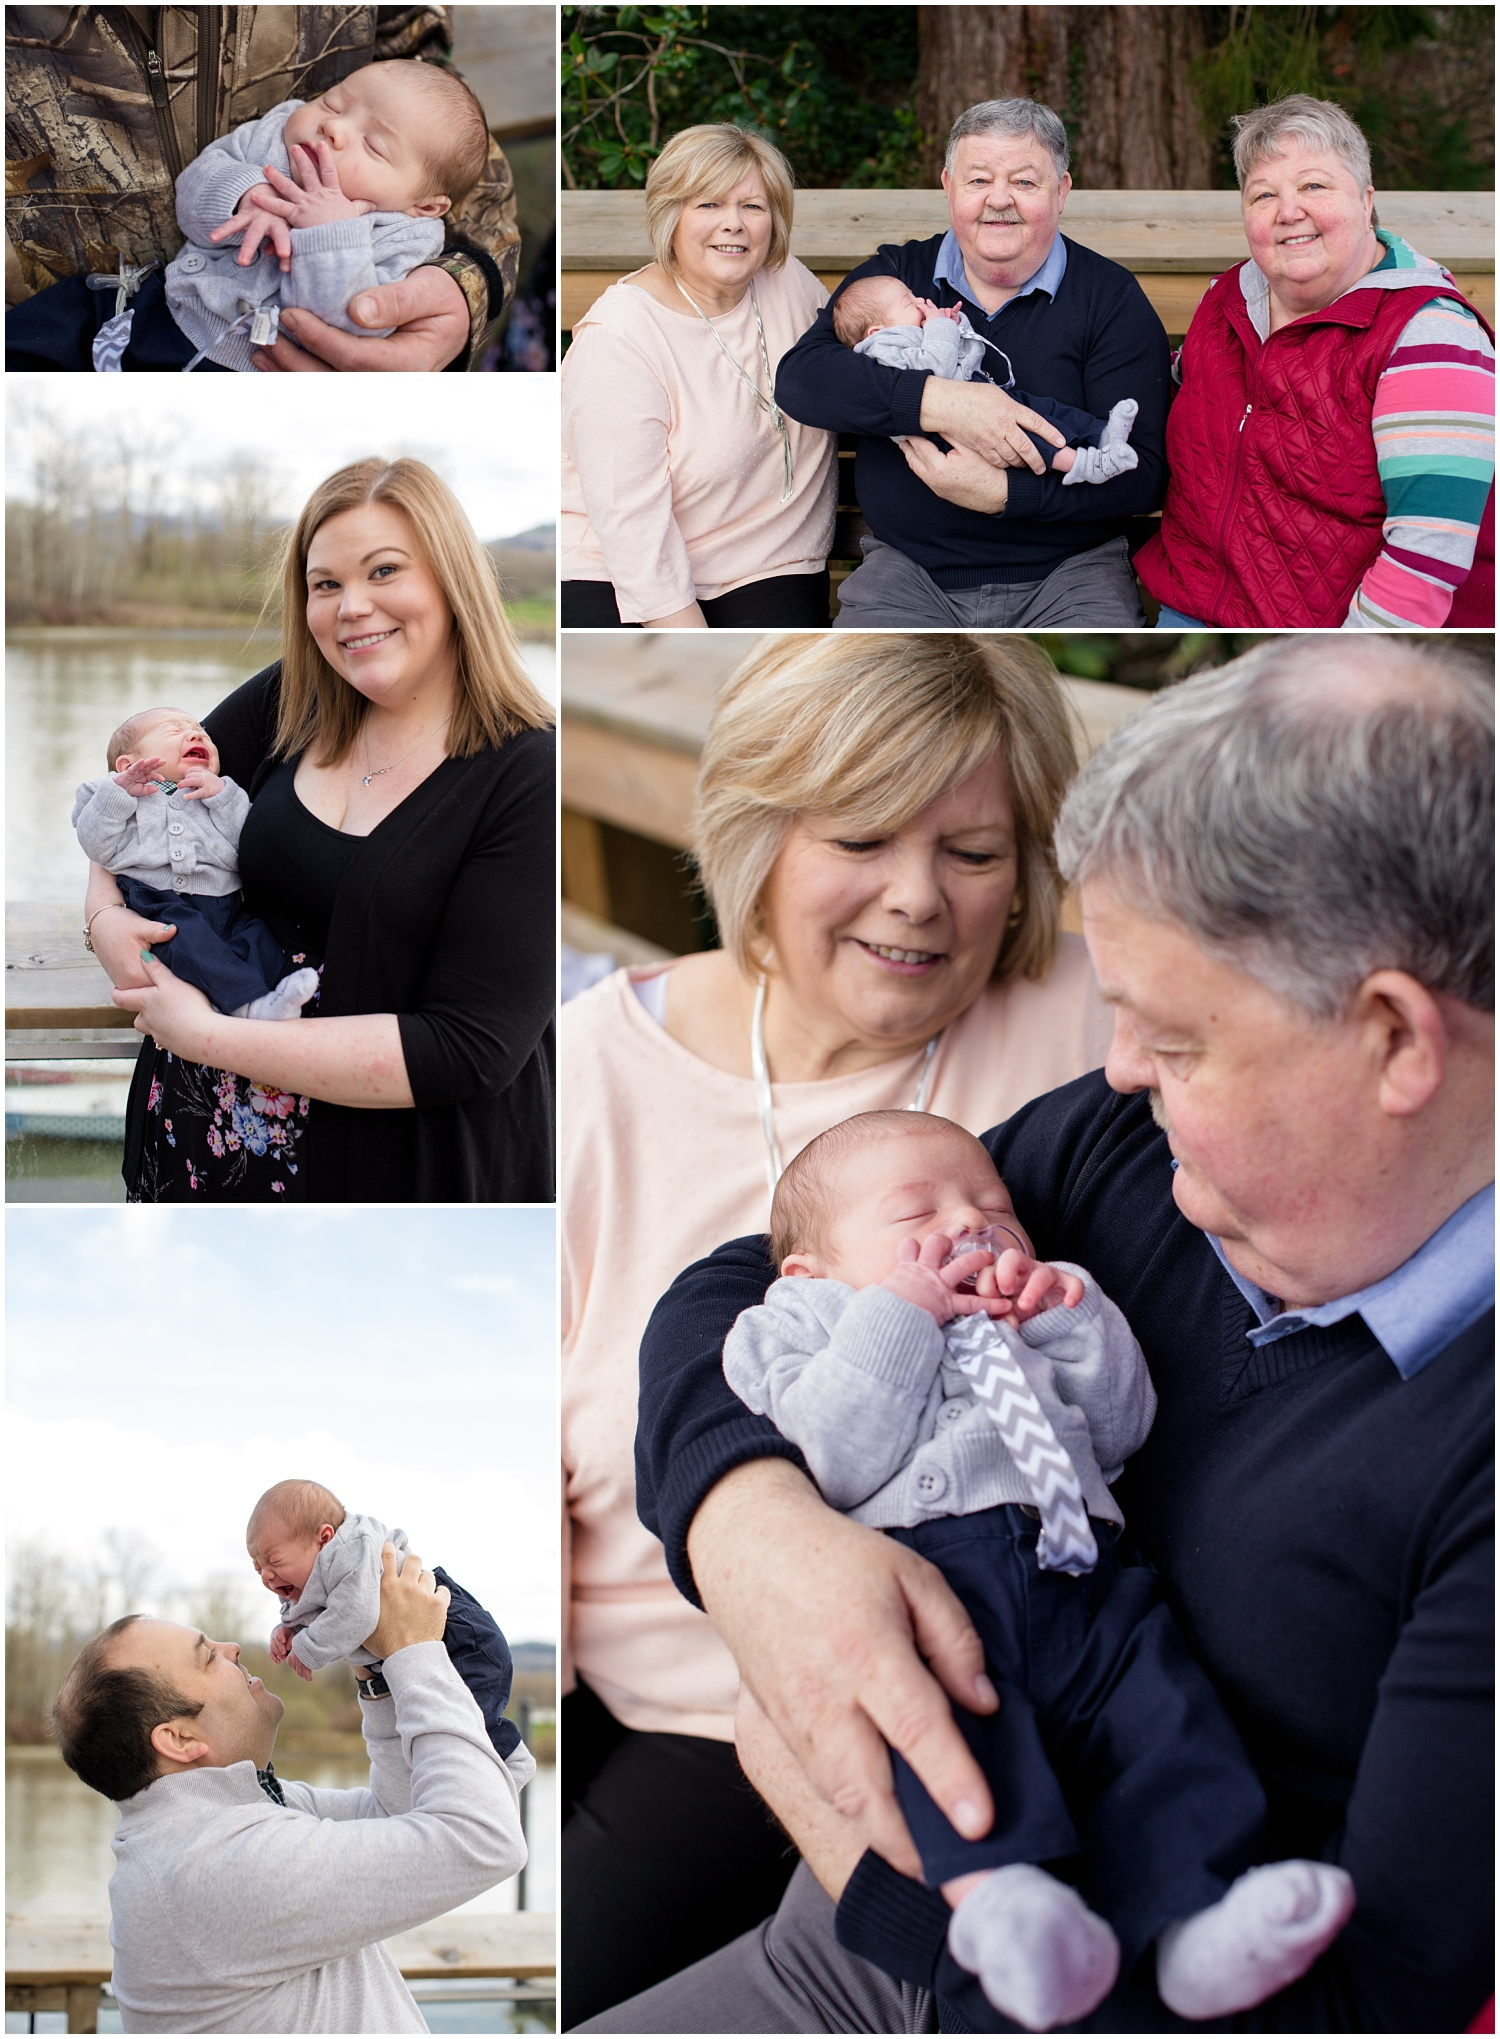 Amazing Day Photography - Fort Langley Family Session - Langley Family Photographer (6).jpg